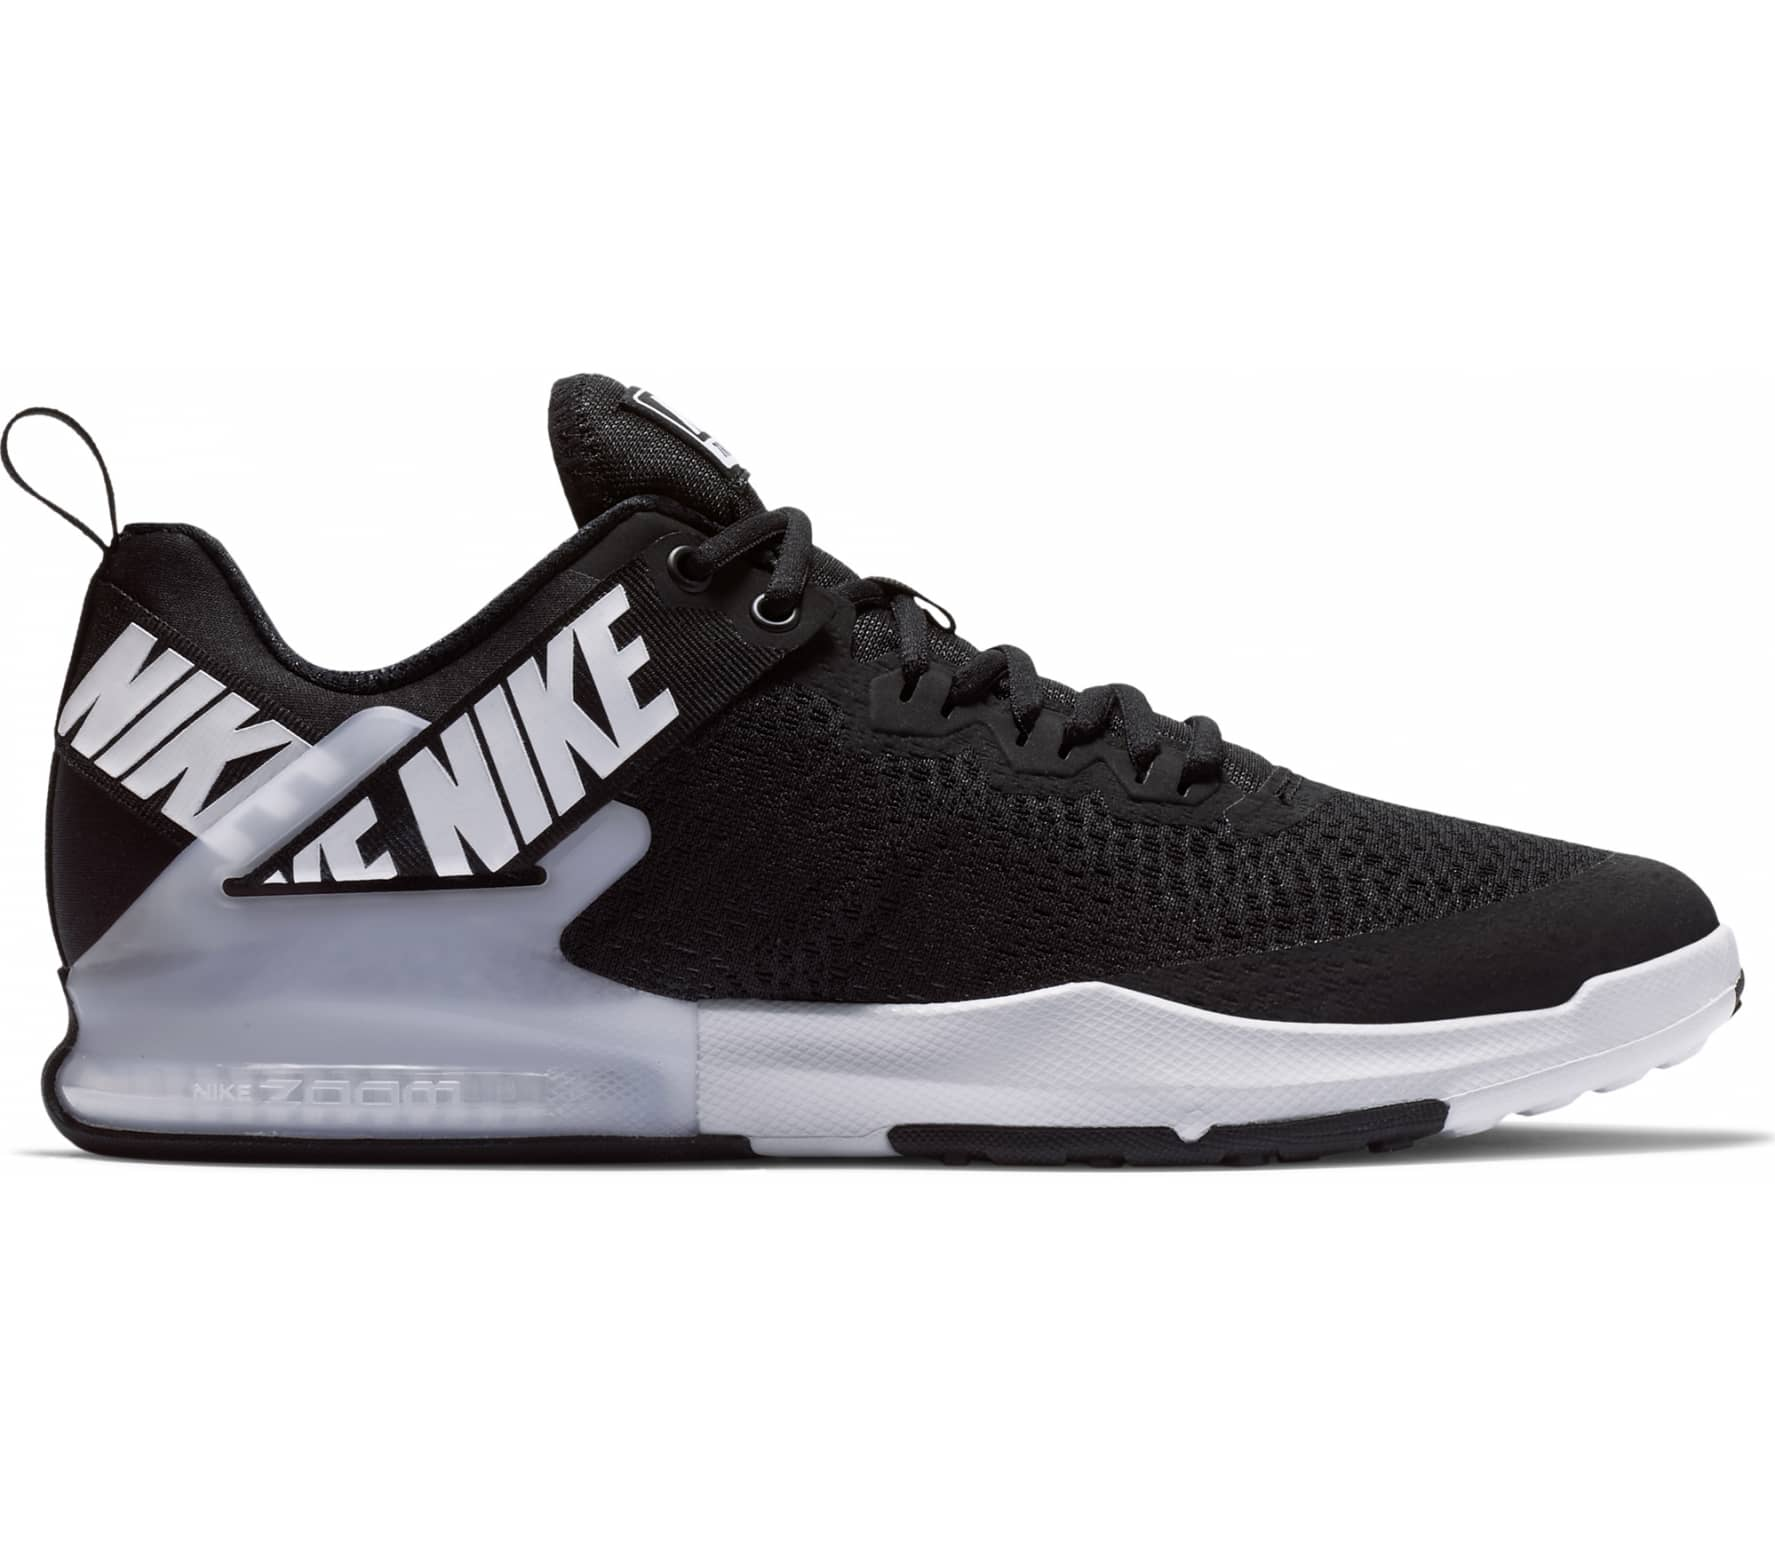 official photos 5c905 02f23 Nike - Zoom Domination TR 2 mens training shoes (black)